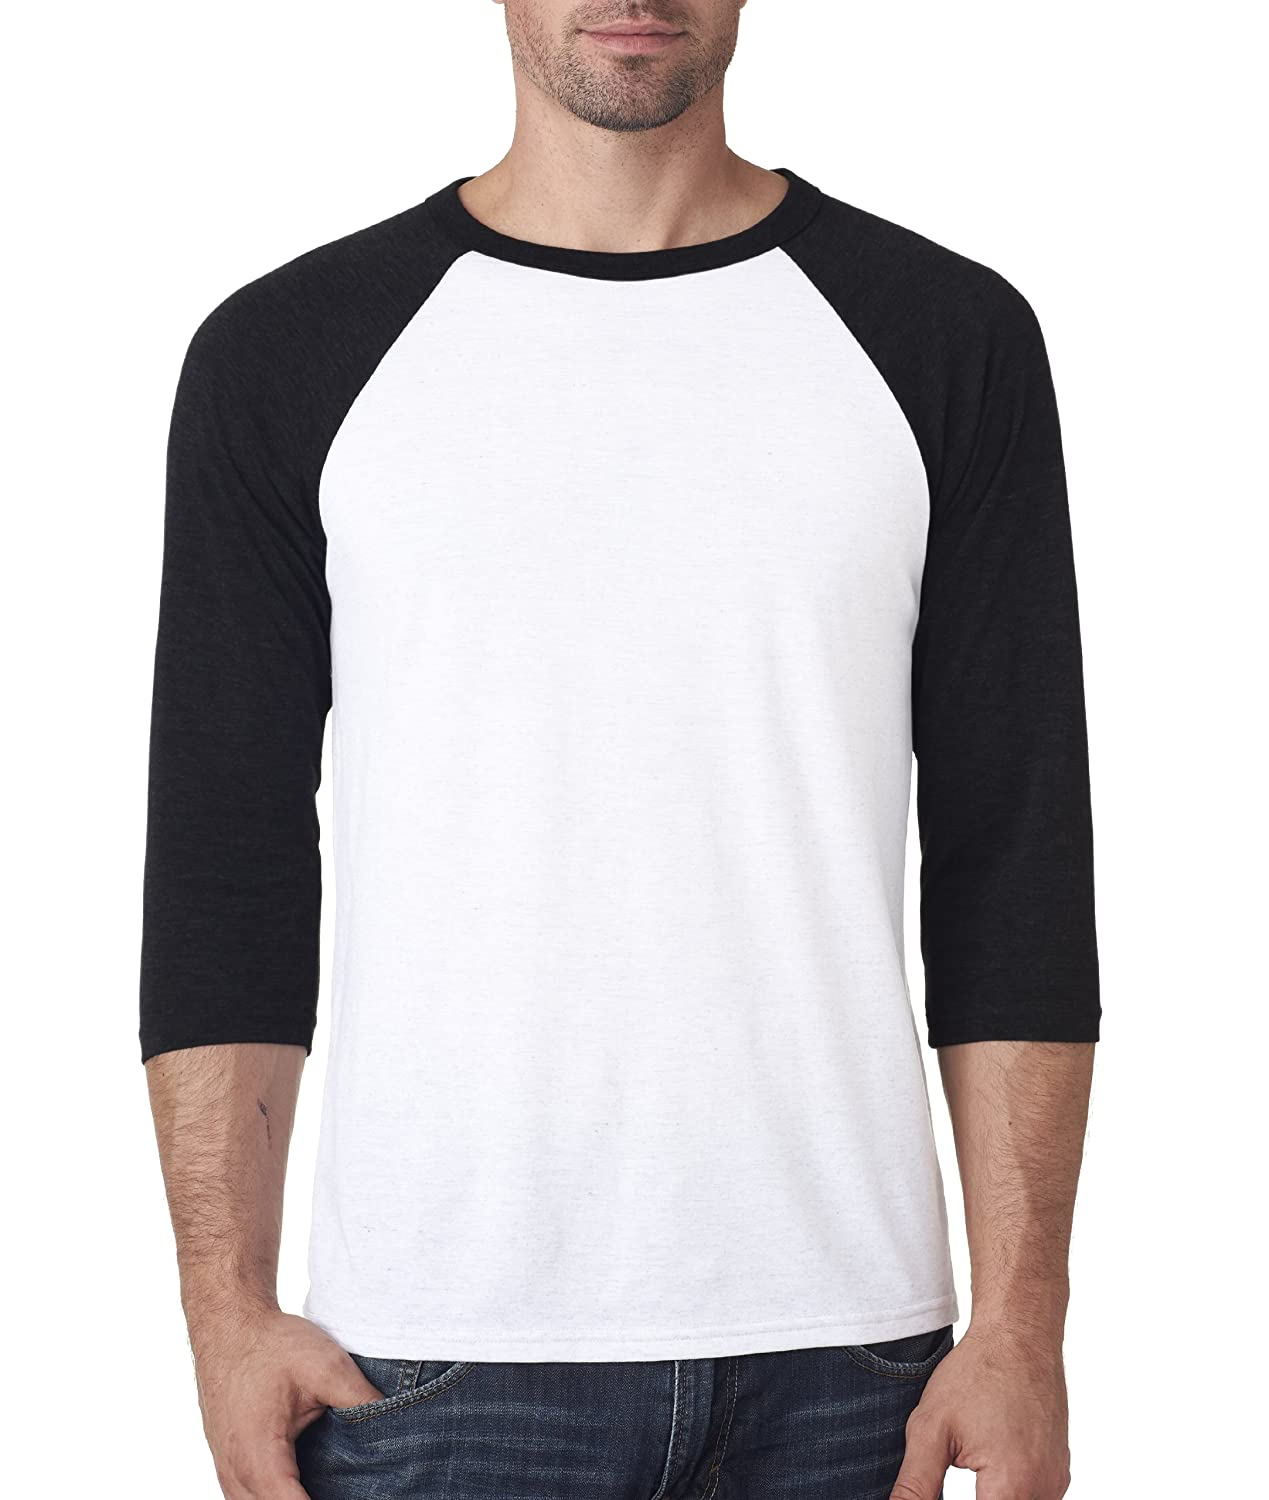 2eac5a745c Bella Canvas Unisex Jersey 3/4 Sleeve Baseball Tee at Amazon Men's Clothing  store: